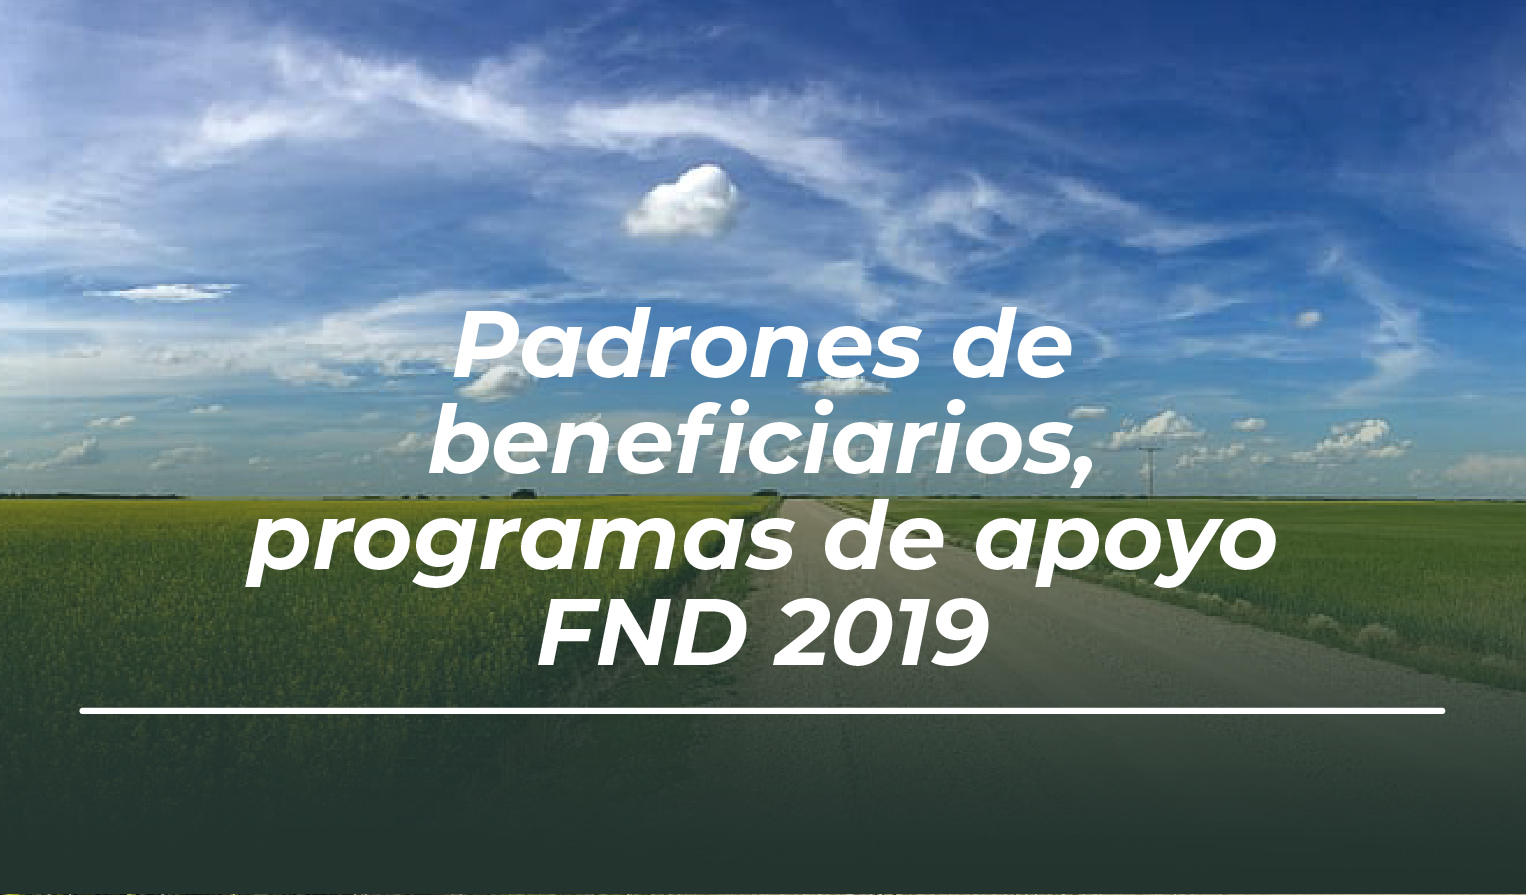 Padrones de beneficiarios